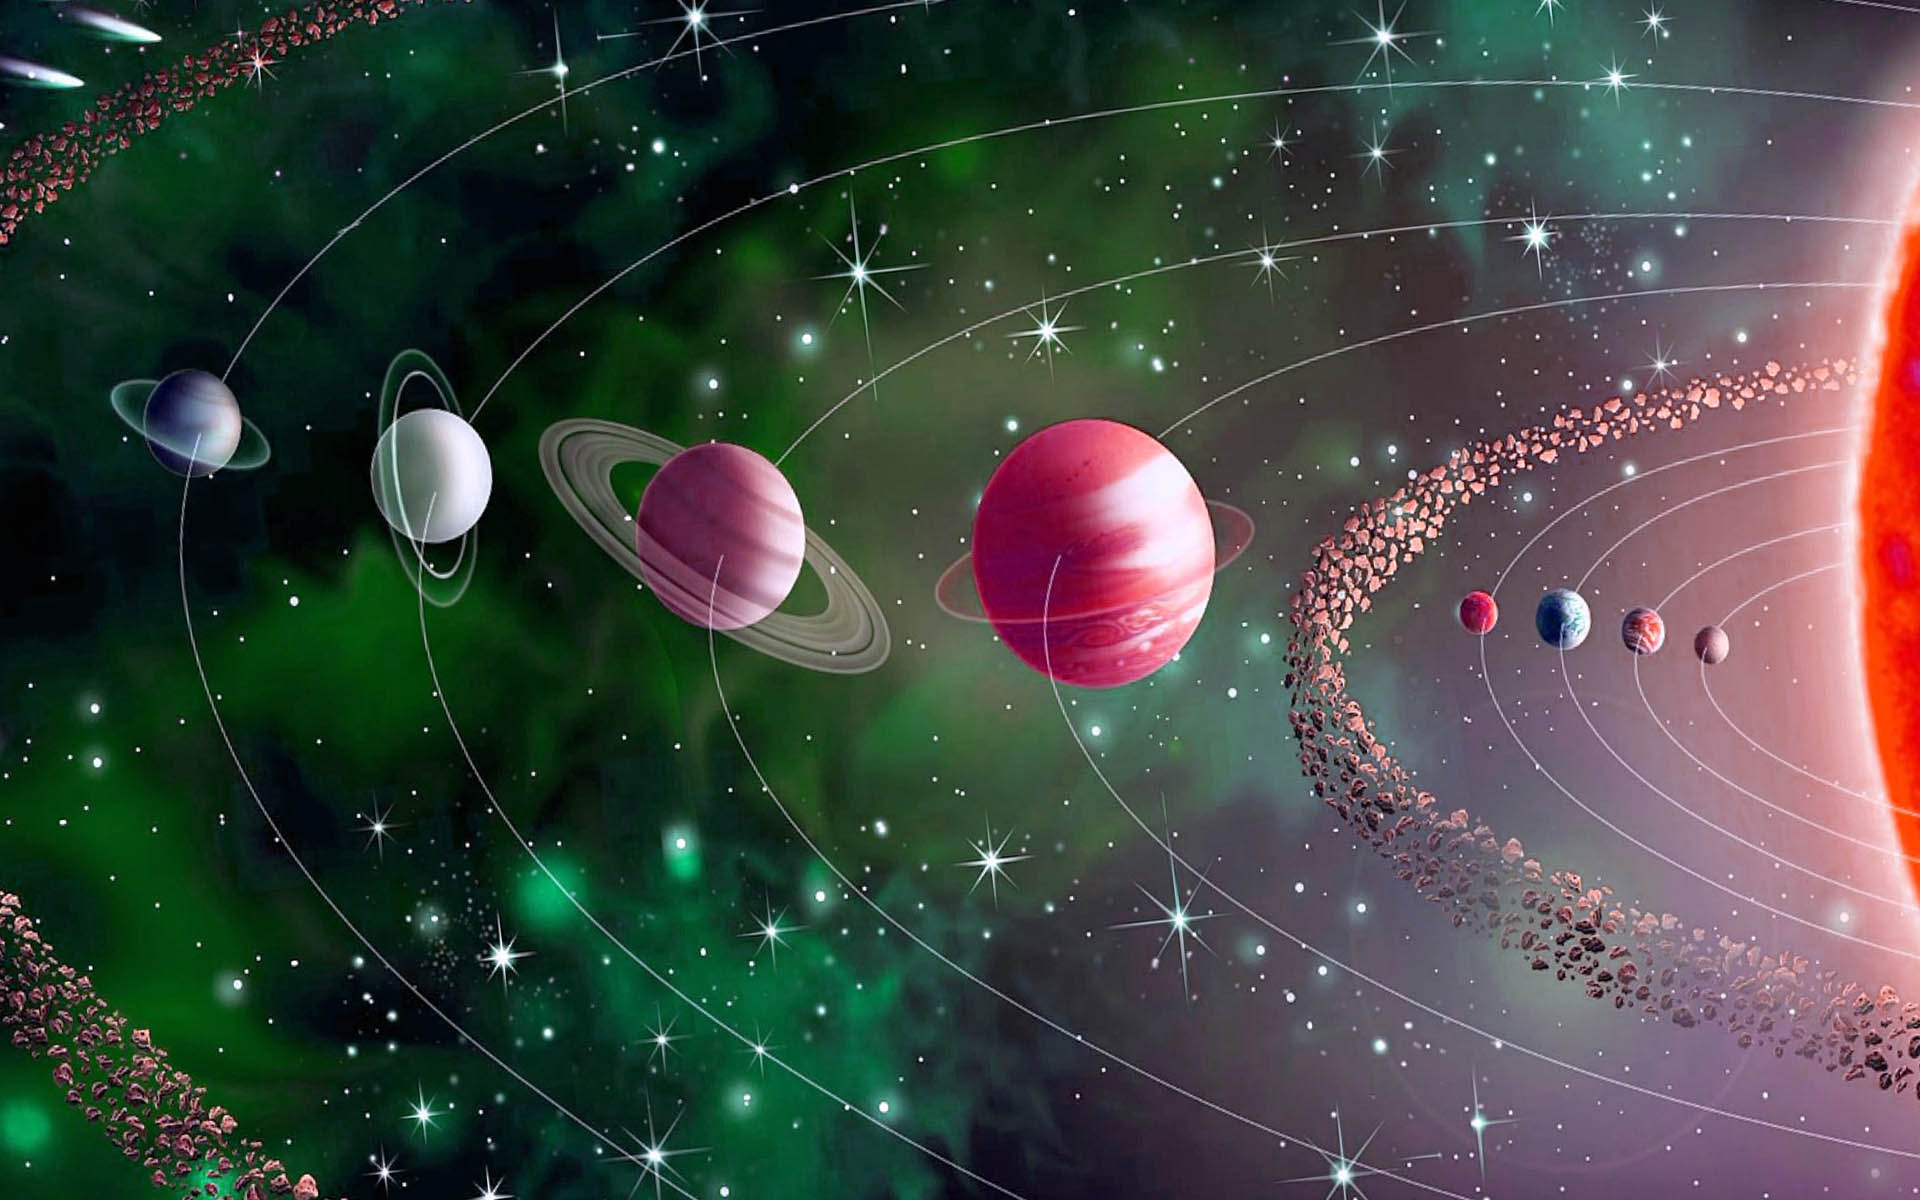 Astrology-Device-Space-Planets-Picture-Wallpaper